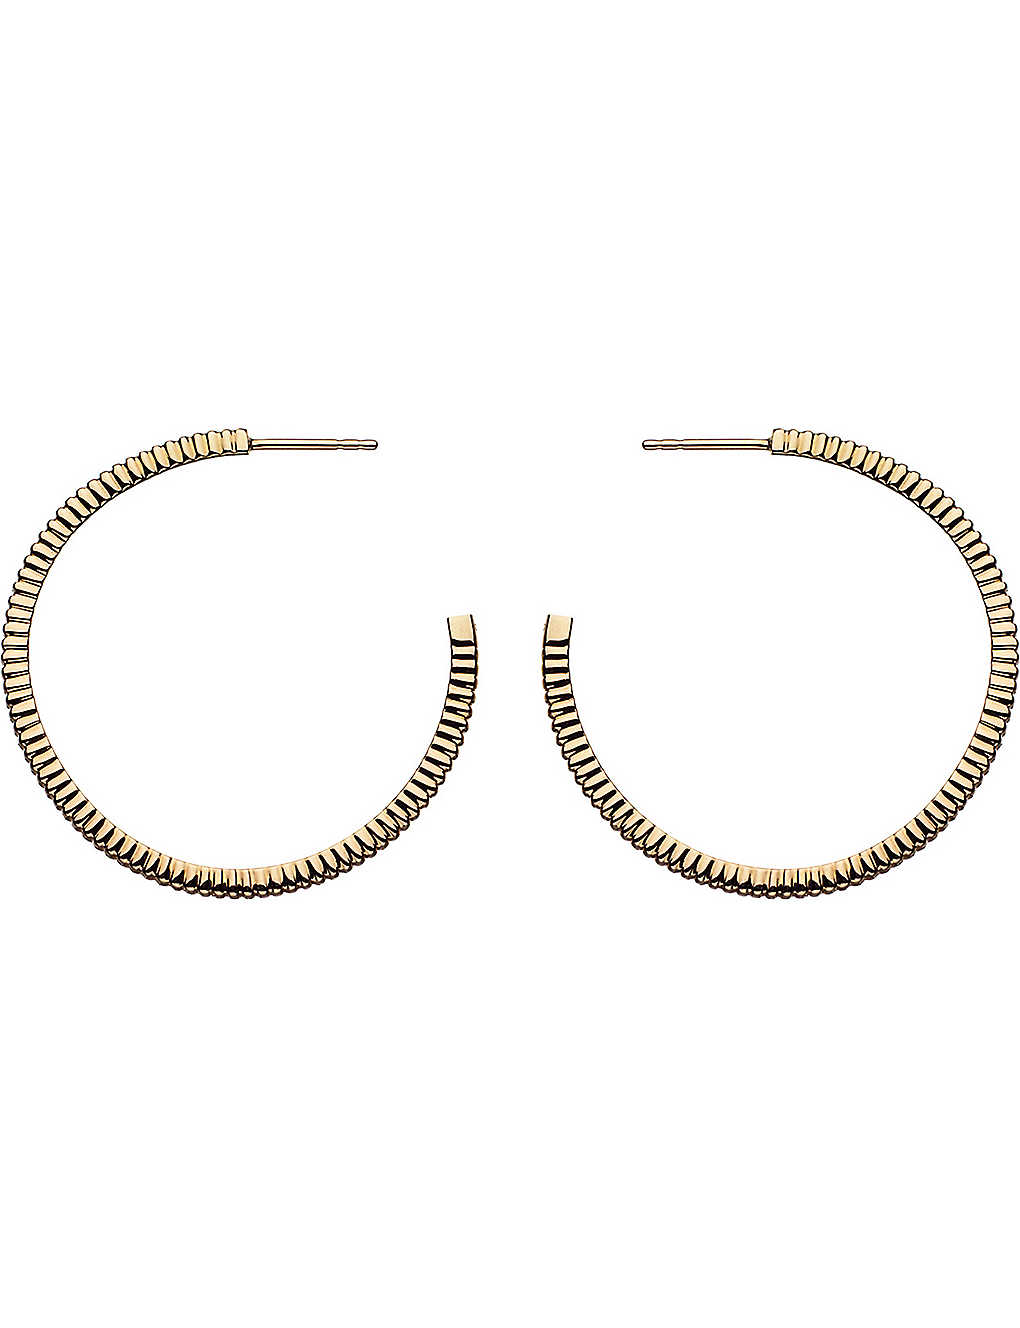 LINKS OF LONDON: Sweetie Signature 18ct gold earrings hoop earrings